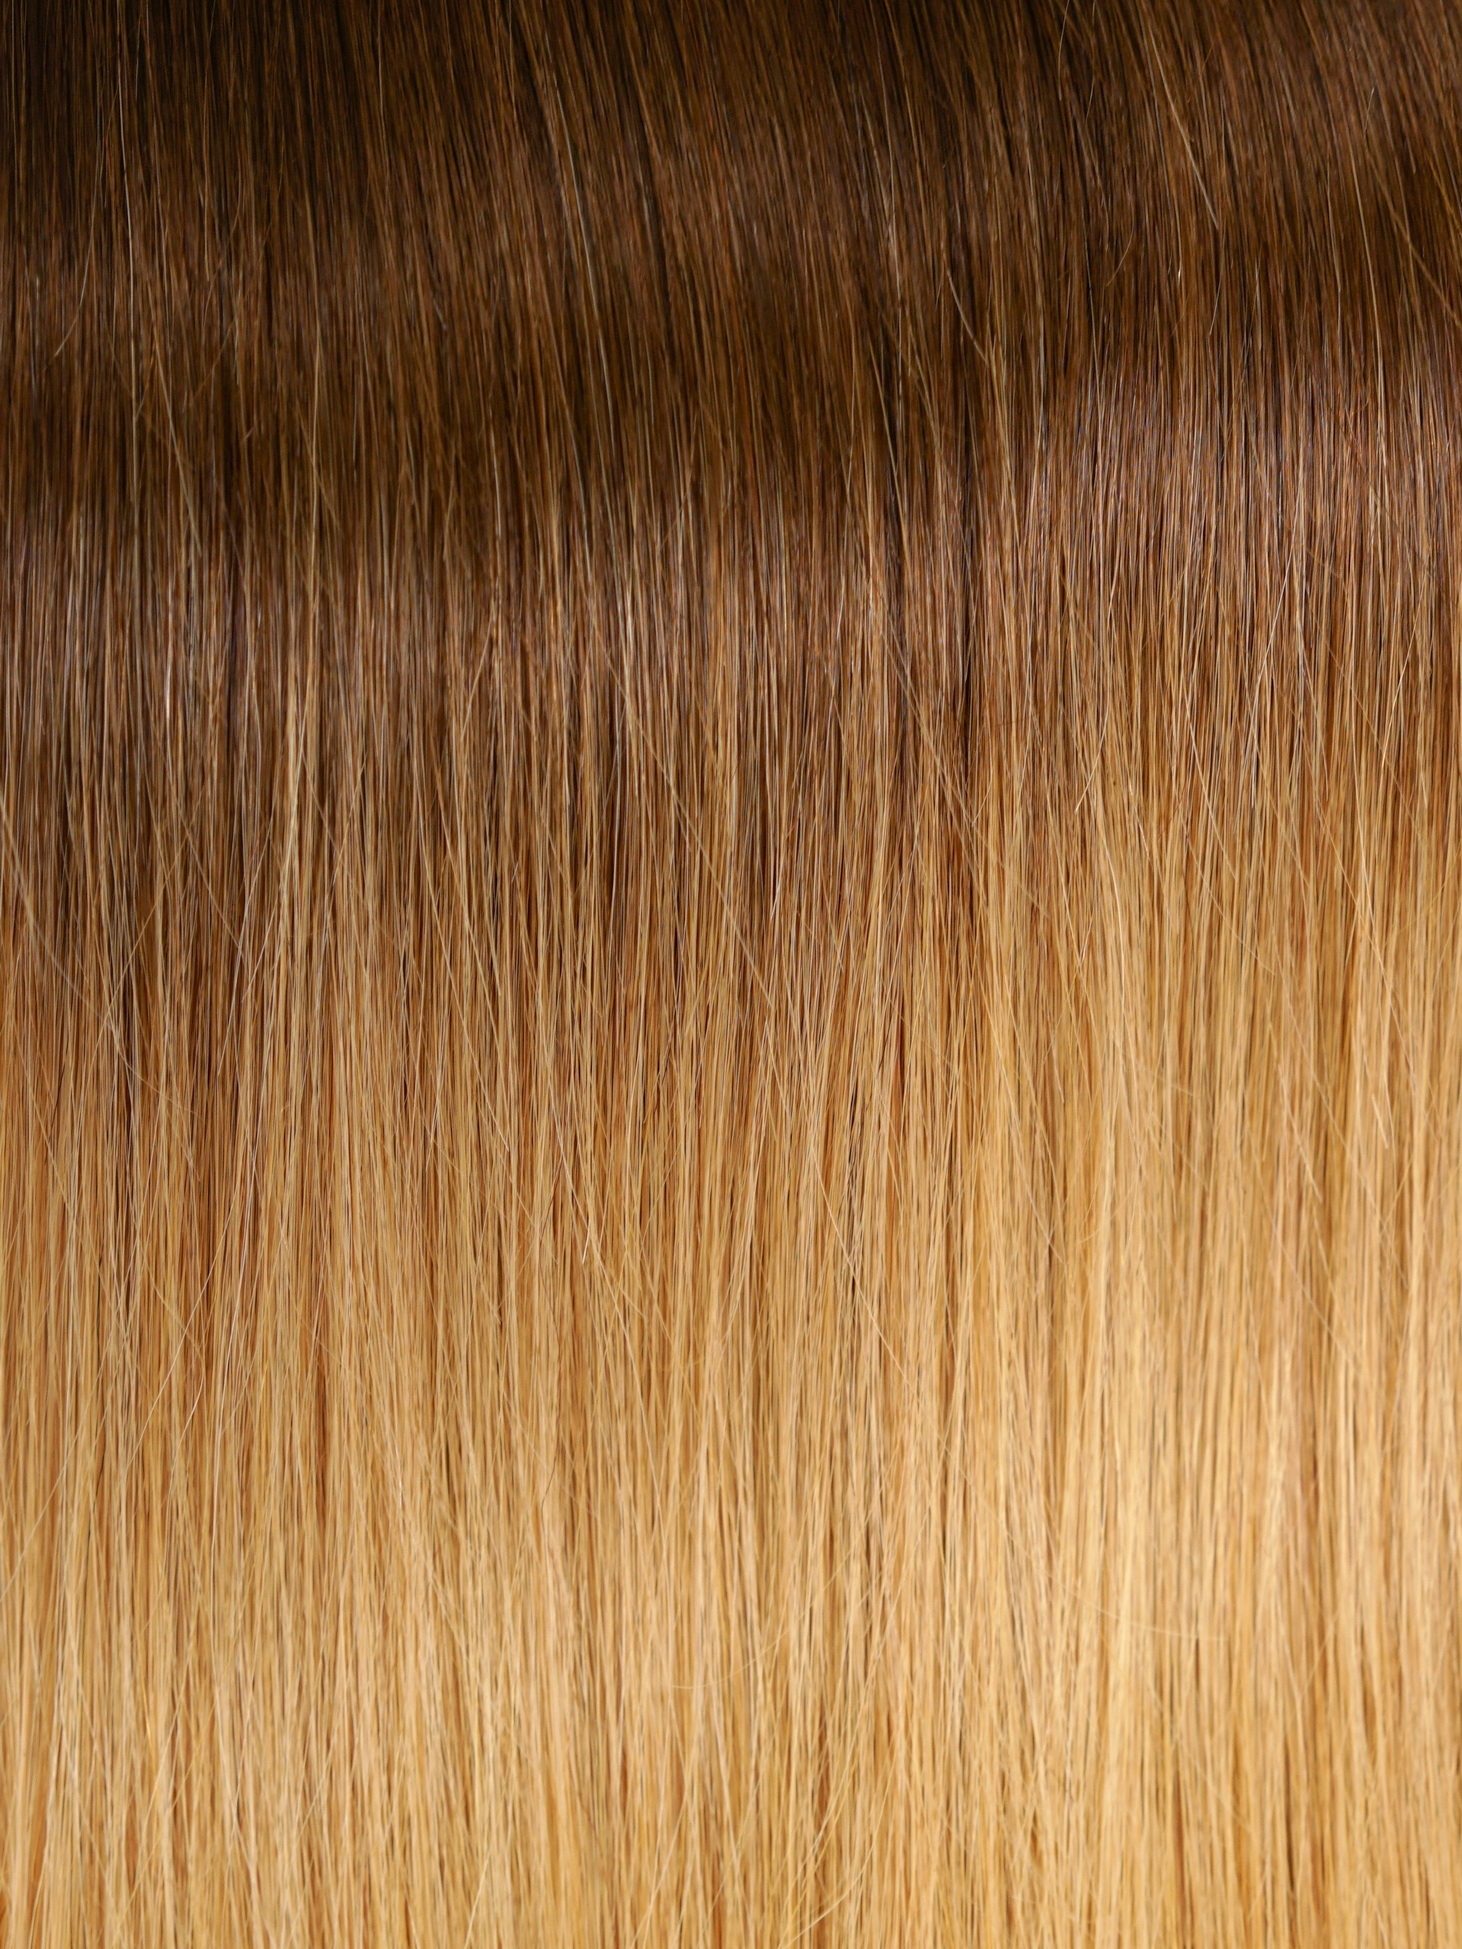 Honey Blonde BALAYAGE #T4/15 - This set utilizes three transition points from a deep dark to a medium brown, ending in a bright golden blonde to provide a dramatic, yet seamless look.